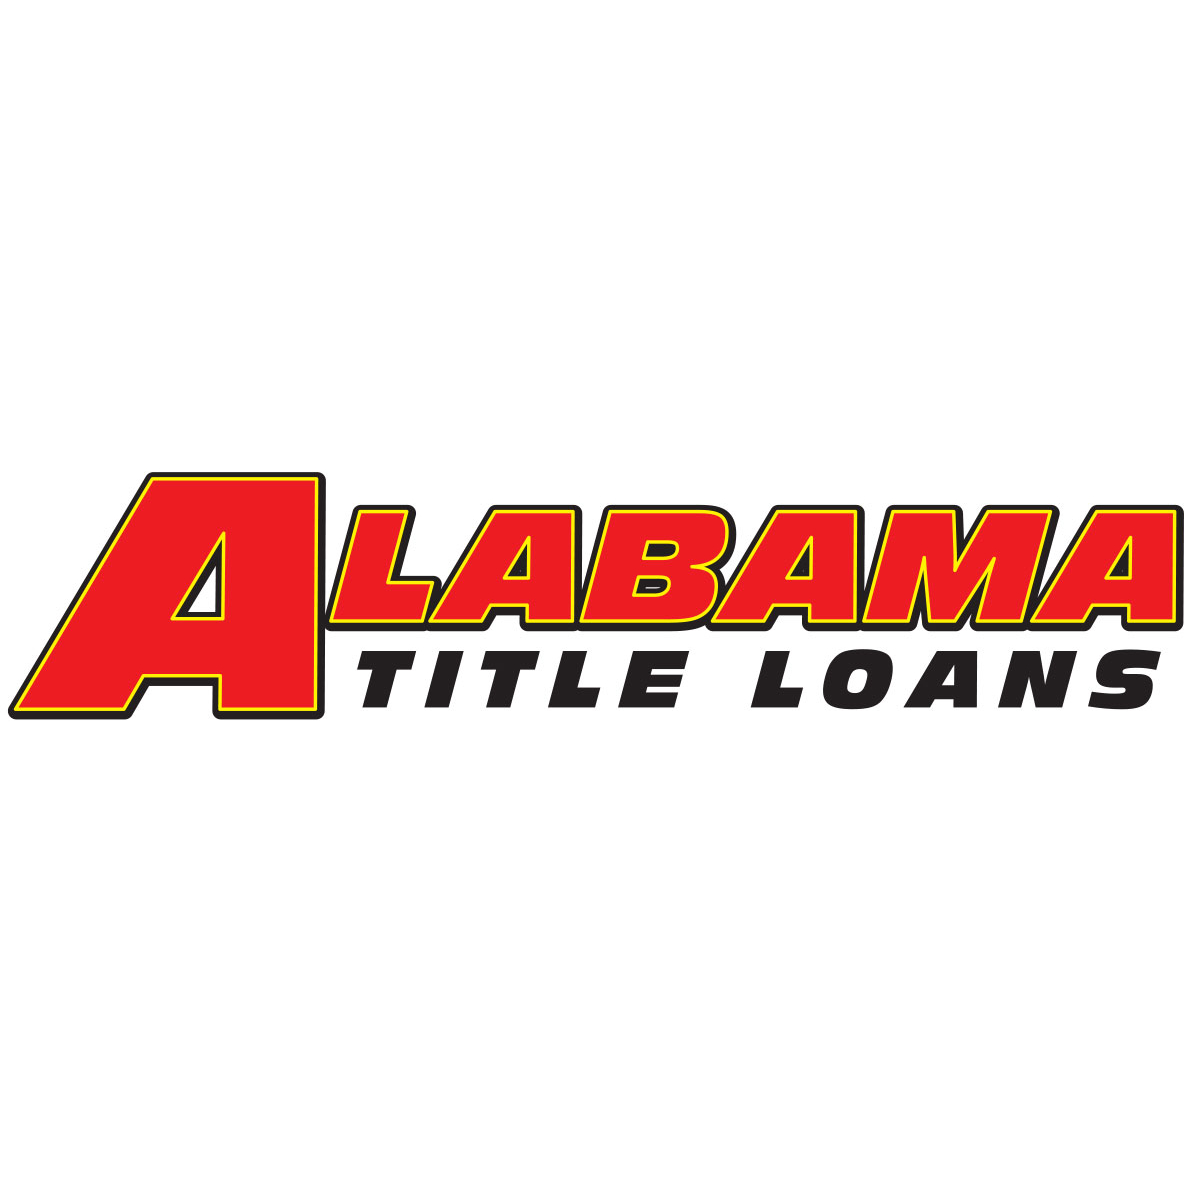 Alabama title loans in homewood al whitepages for Sharks fish chicken birmingham al